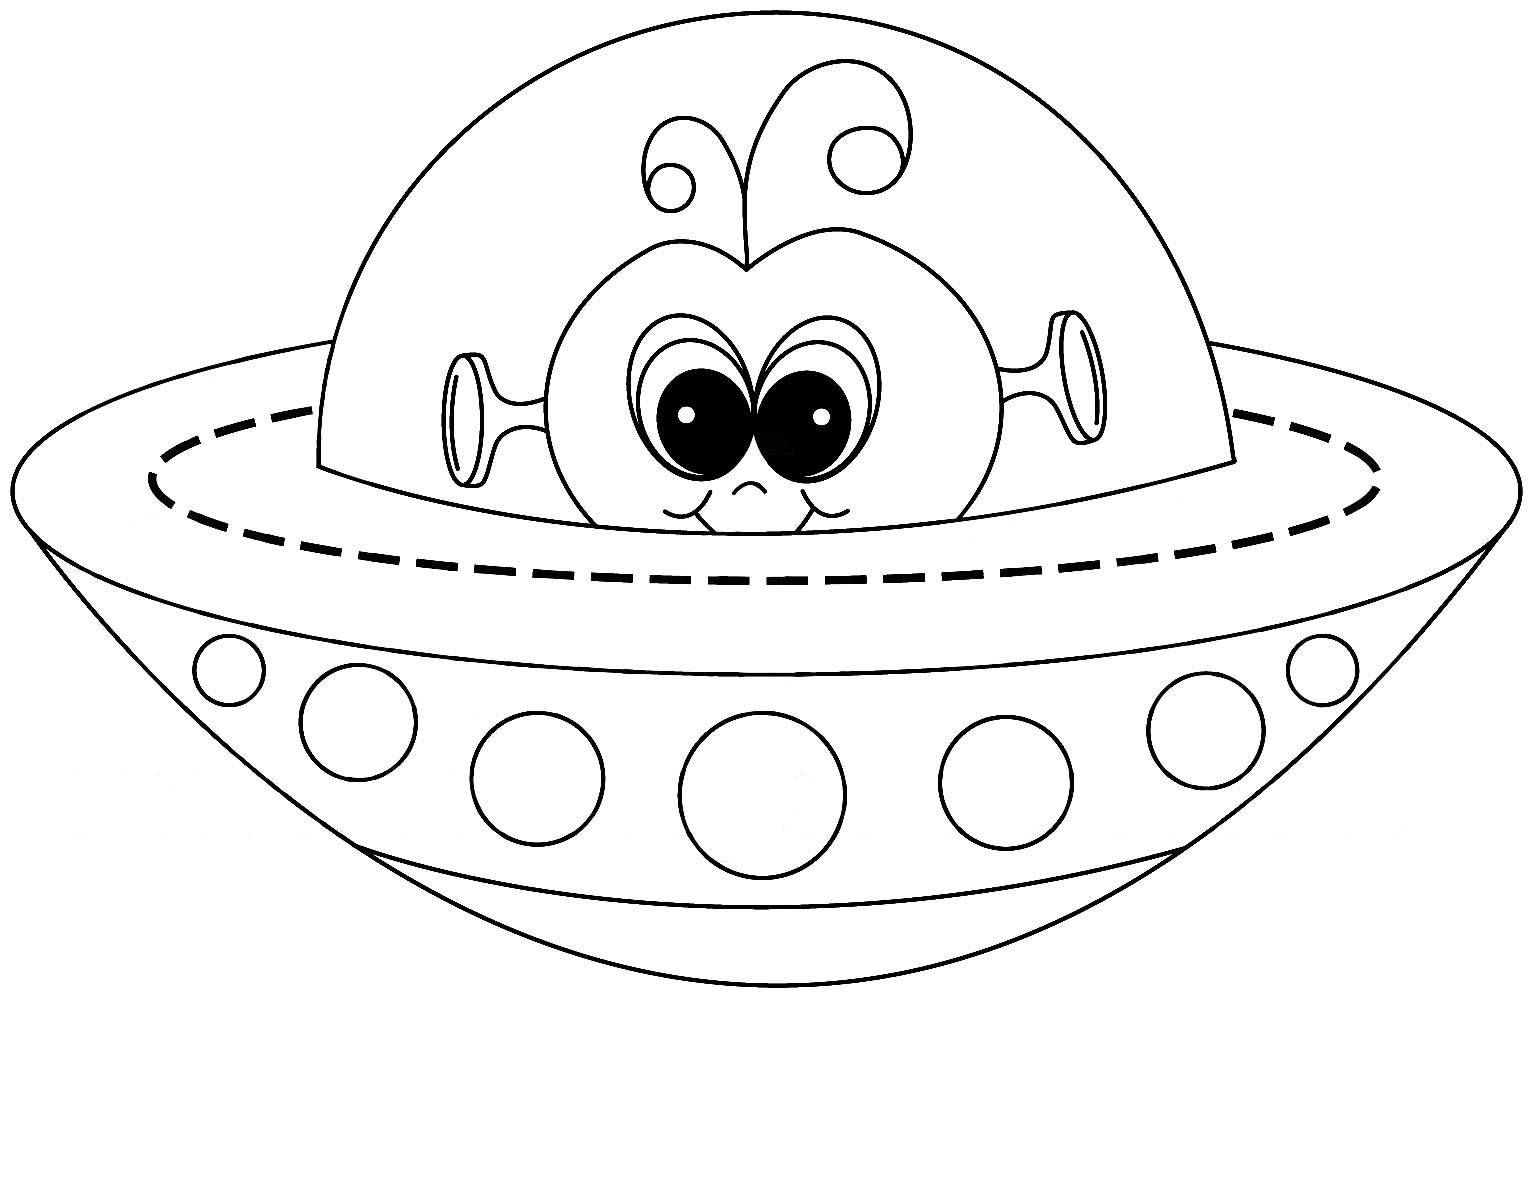 alien spaceship coloring pages 59 best coloring pages for the kids images on pinterest alien pages spaceship coloring